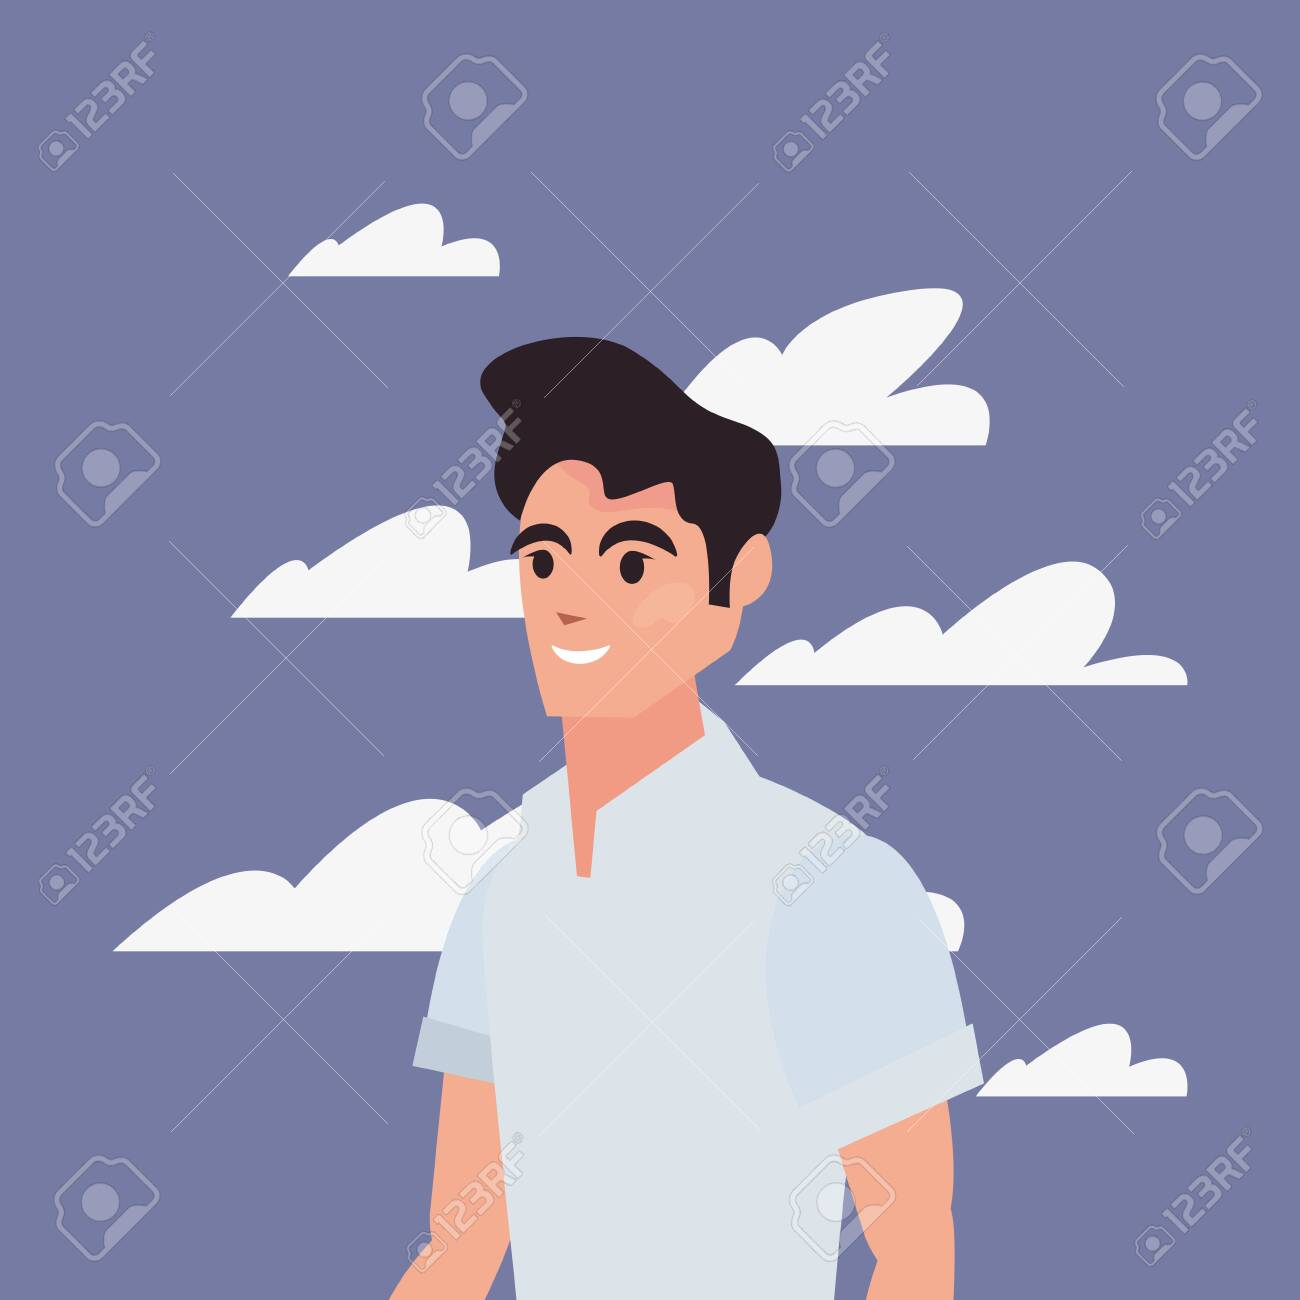 Man Character Portrait Sky Background Vector Illustration Royalty Free Cliparts Vectors And Stock Illustration Image 148981625